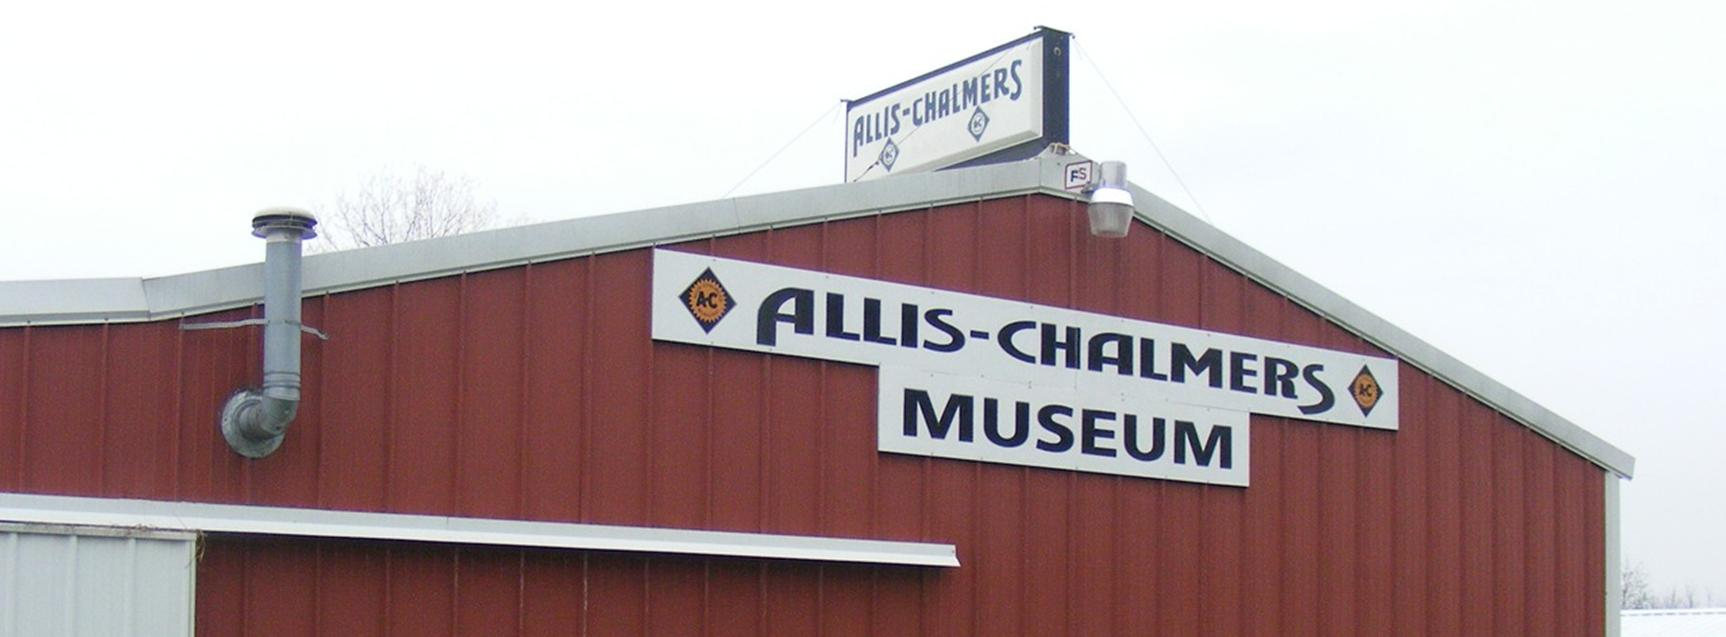 allis chalmers tractors with Allischalmersmuseum on Allis Chalmers 7060 2wd Beta V1 besides Article 1da9c9aa 47b1 5f54 Bb7f 9ab489622c2c likewise Allis Chalmers B additionally 24486224 further Le Sueur Pioneer Power Show.